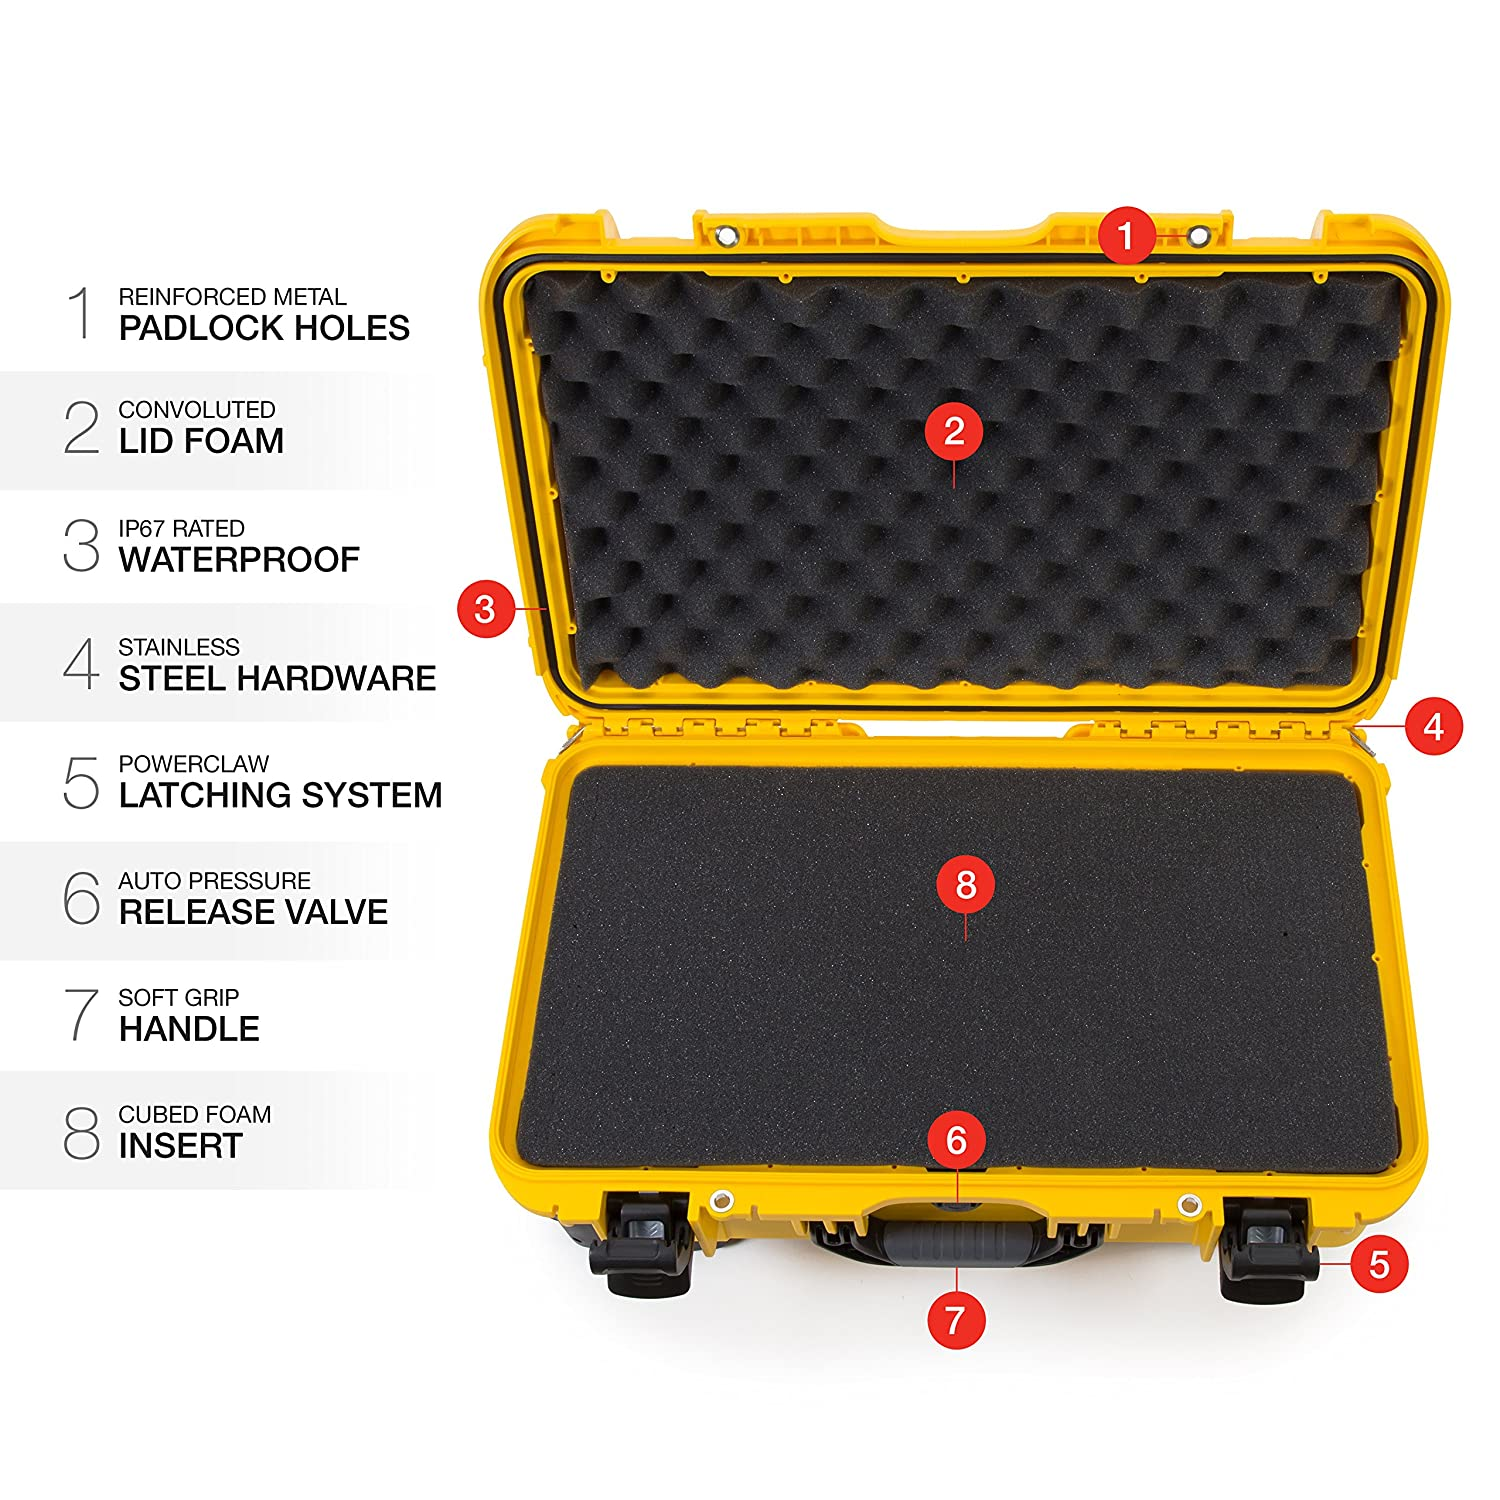 Graphite Nanuk 935 Waterproof Hard Case with Wheels and Foam Insert for Sony Mirrorless Cameras and Lenses